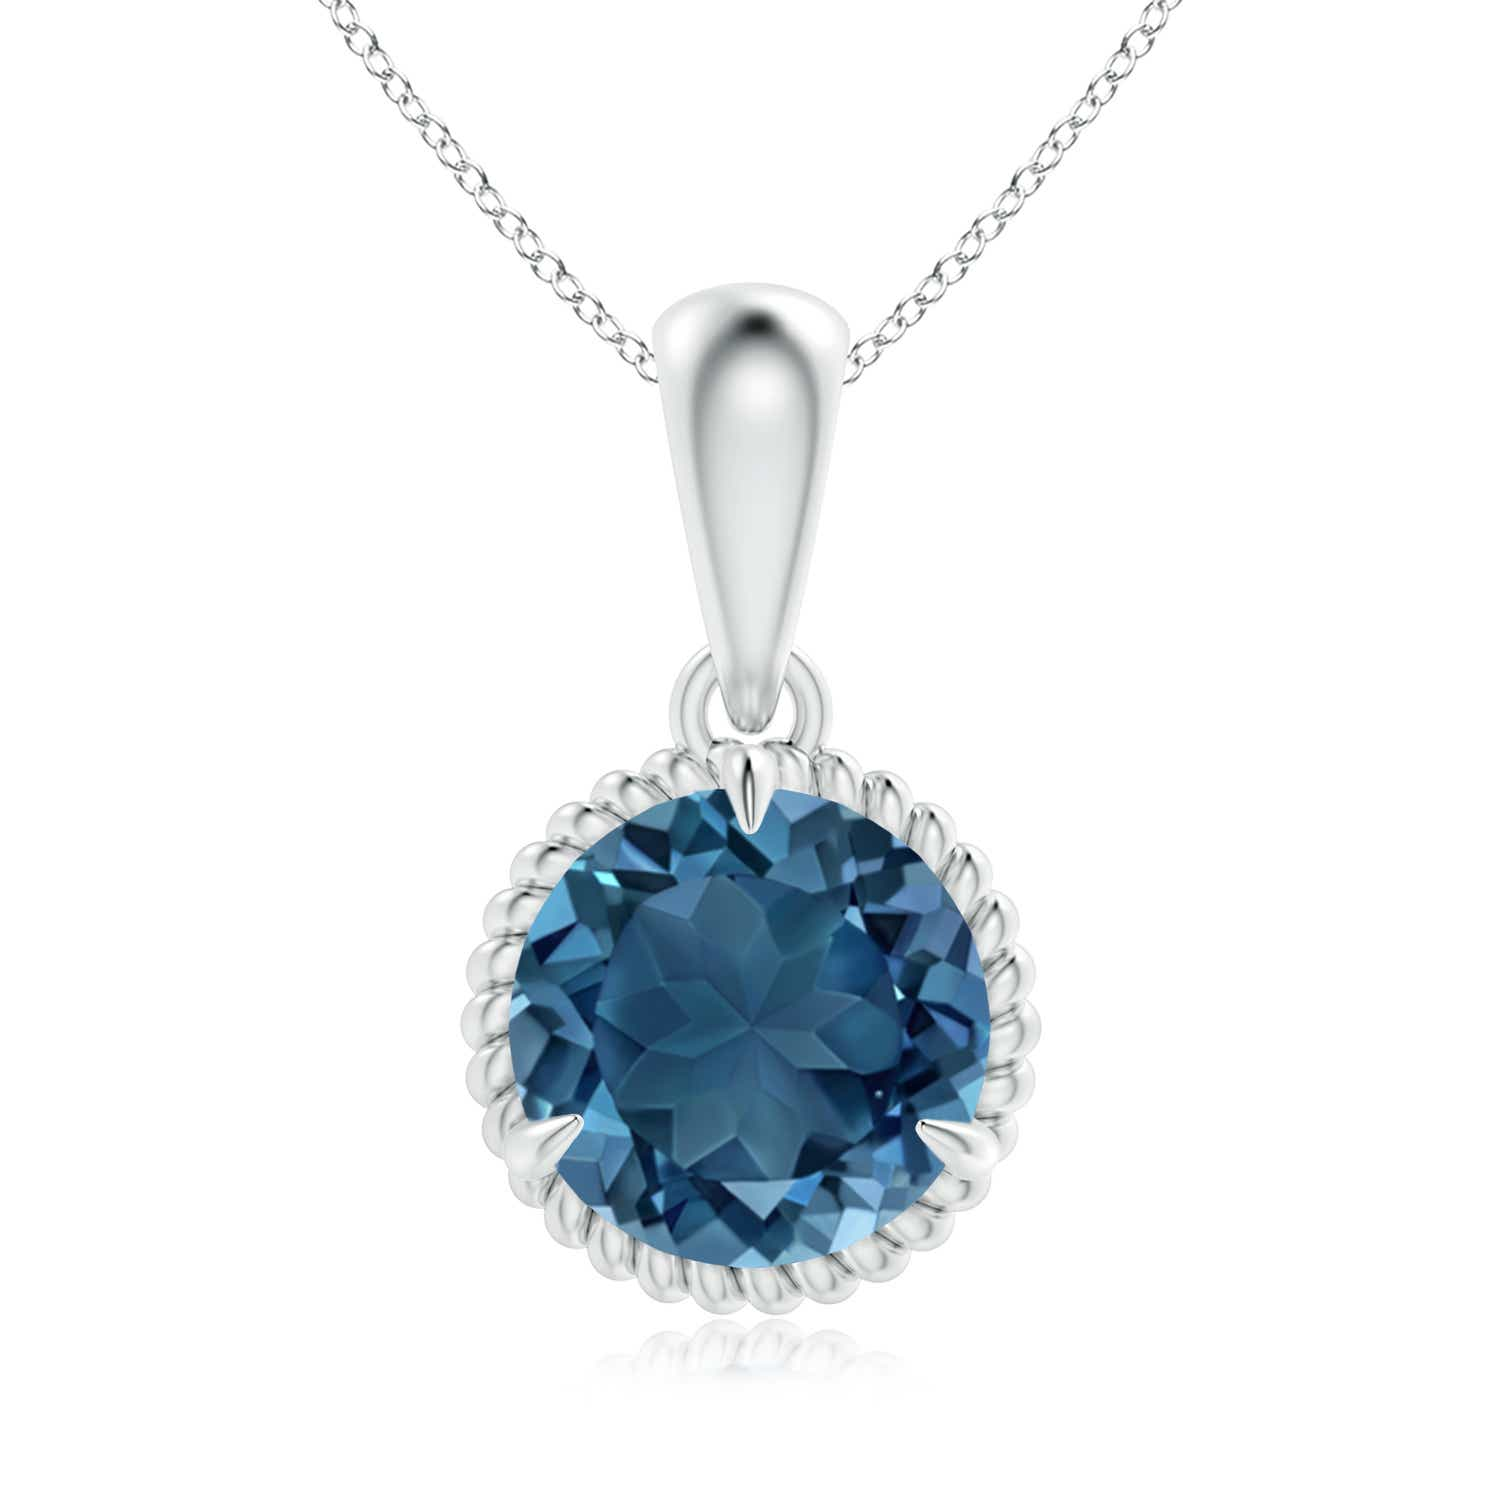 Angara Claw-Set Round London Blue Topaz Pendant with Diamond Halo YKZQ20vgQ